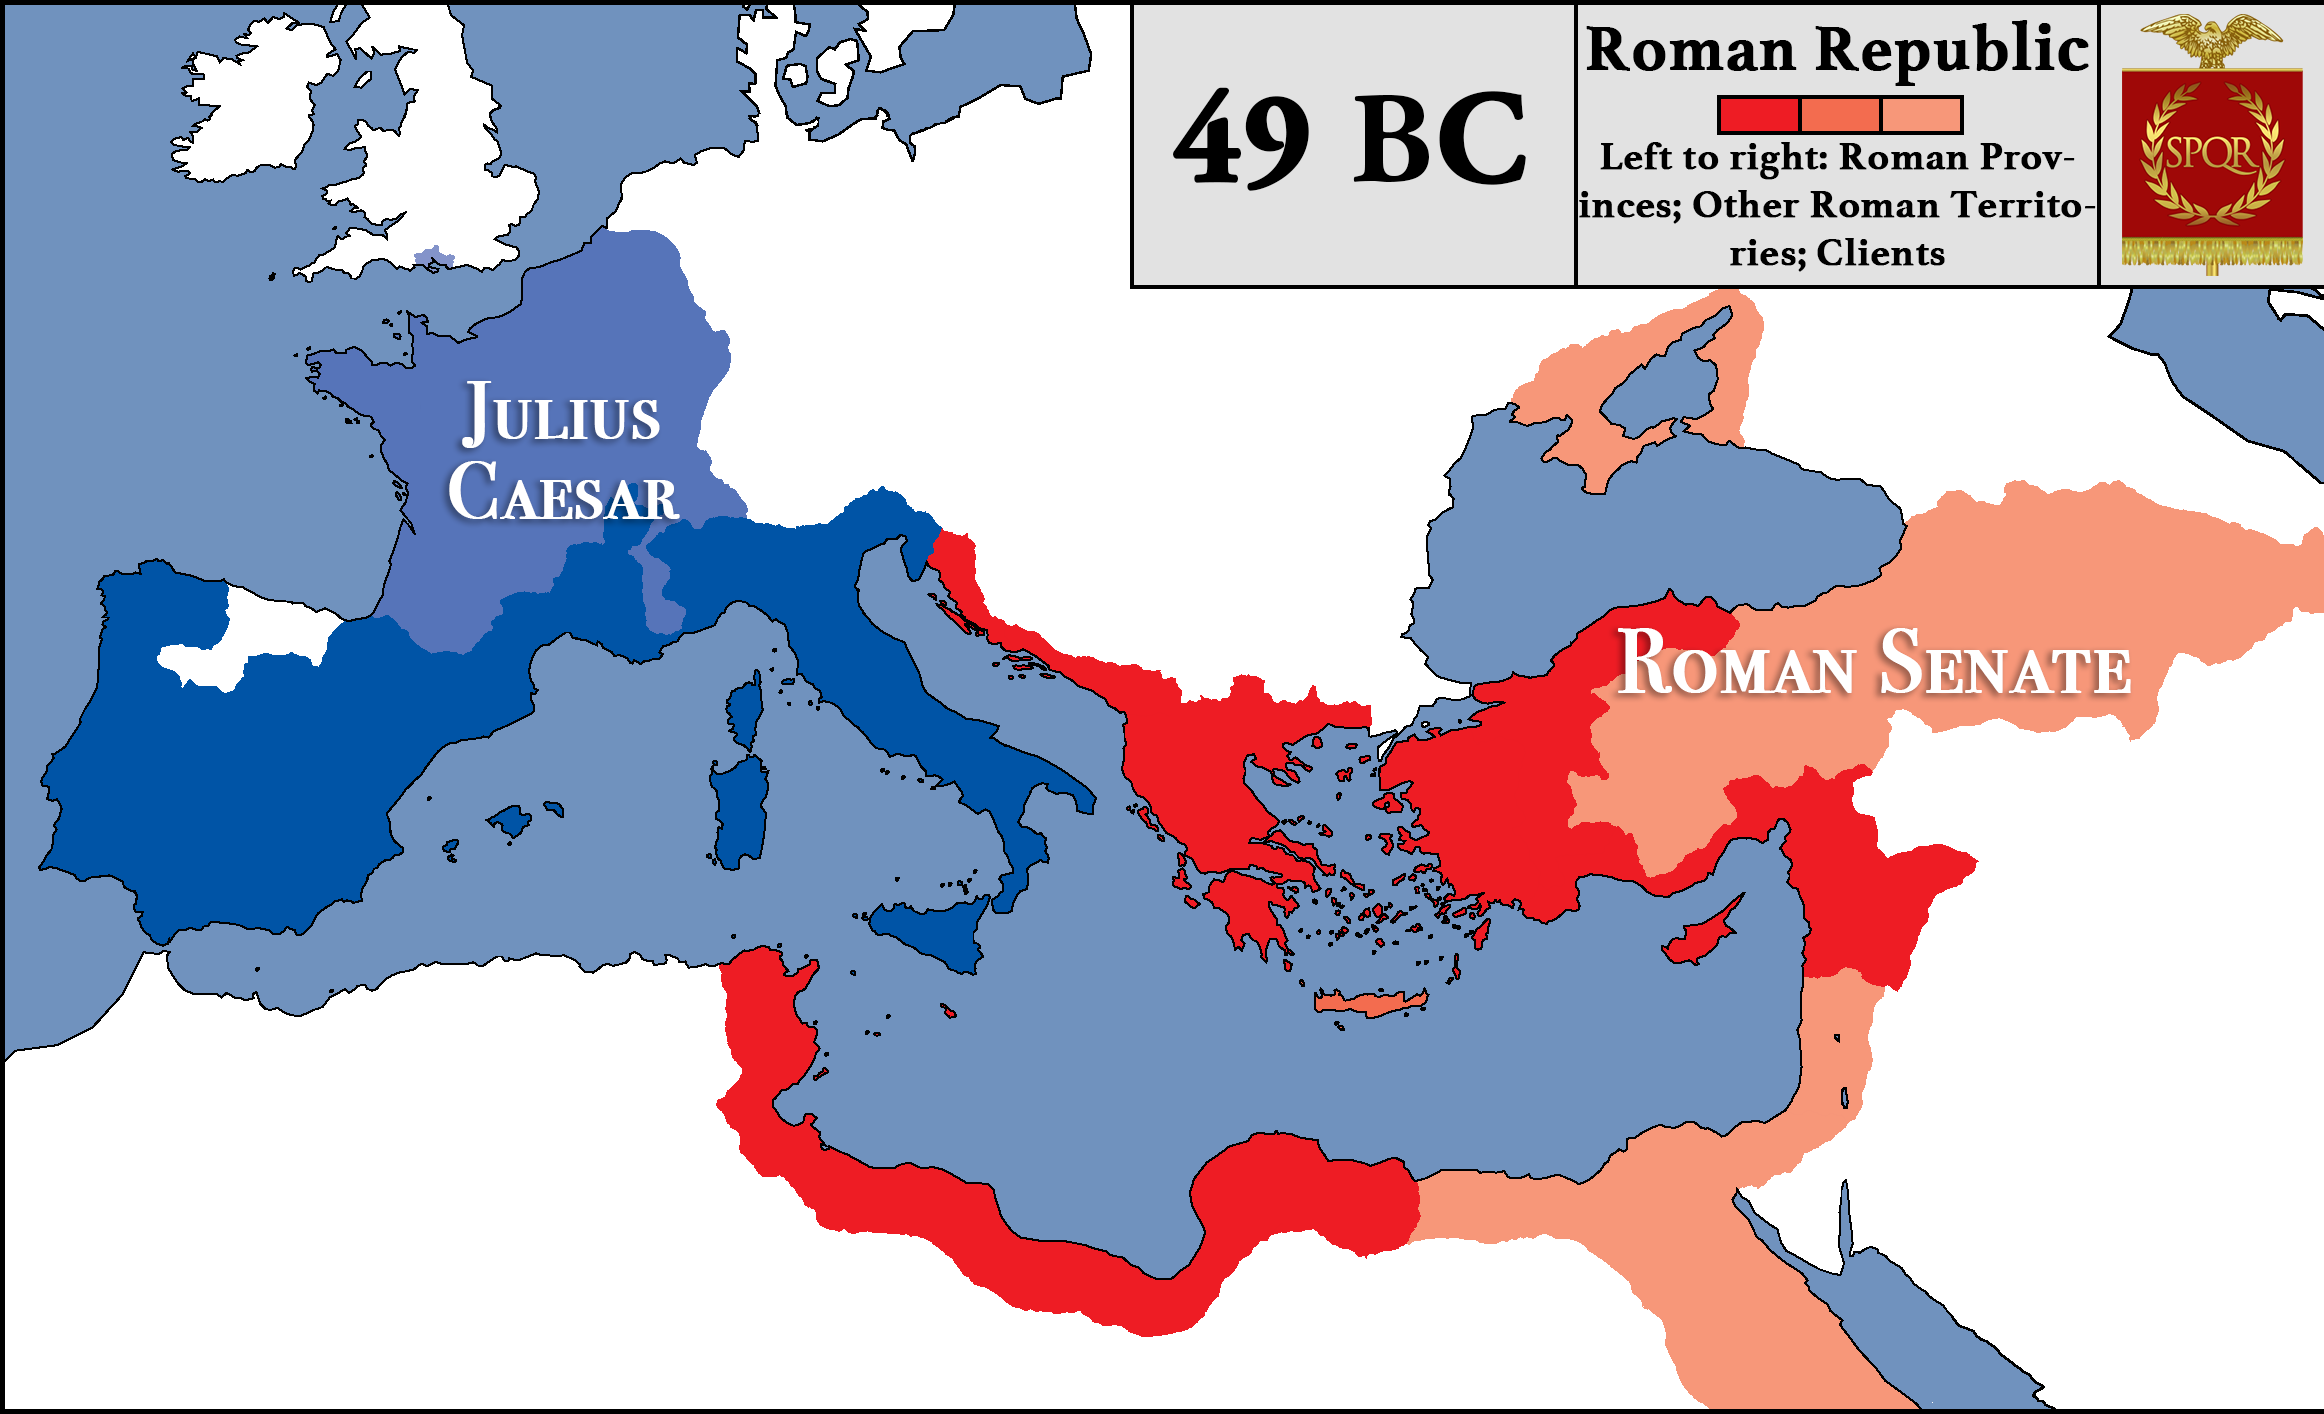 a history of rome under the caesars Learn more about leader julius caesar of a new chapter in roman history by age 31, caesar had fought in several time caesar was governing under.